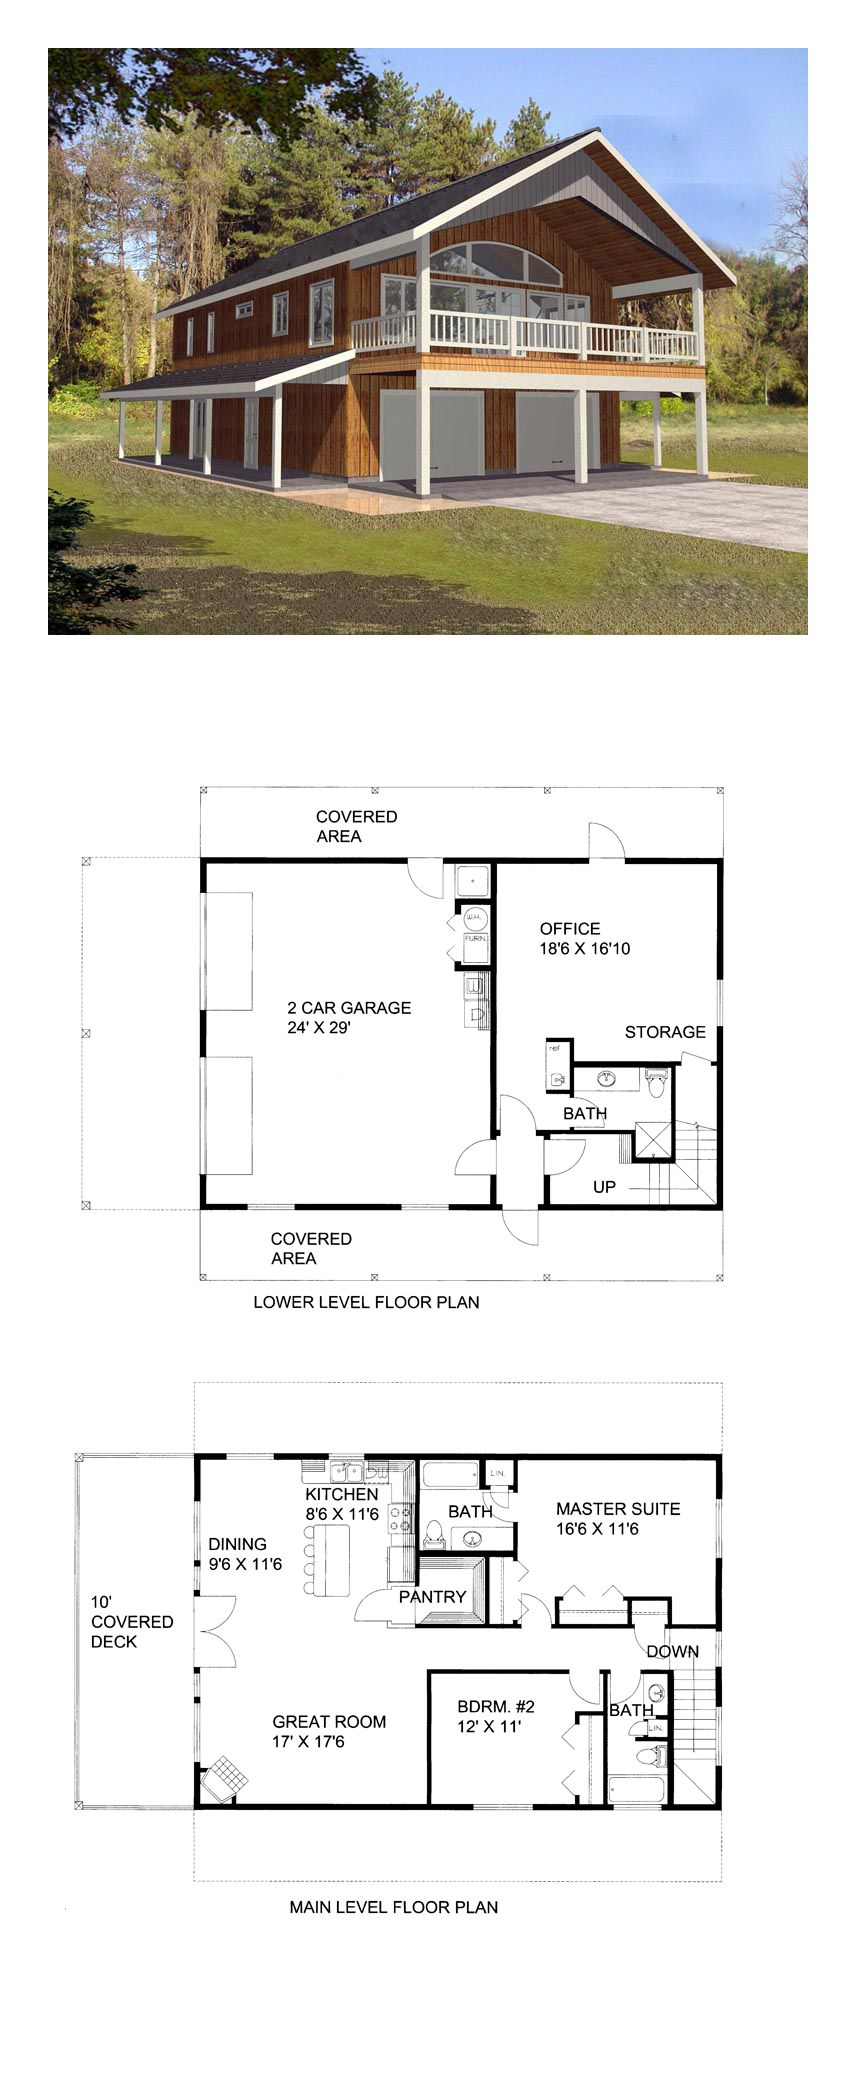 Garage apartment plan 85372 total living area 1901 sq for 2 bedroom 2 bath garage apartment plans